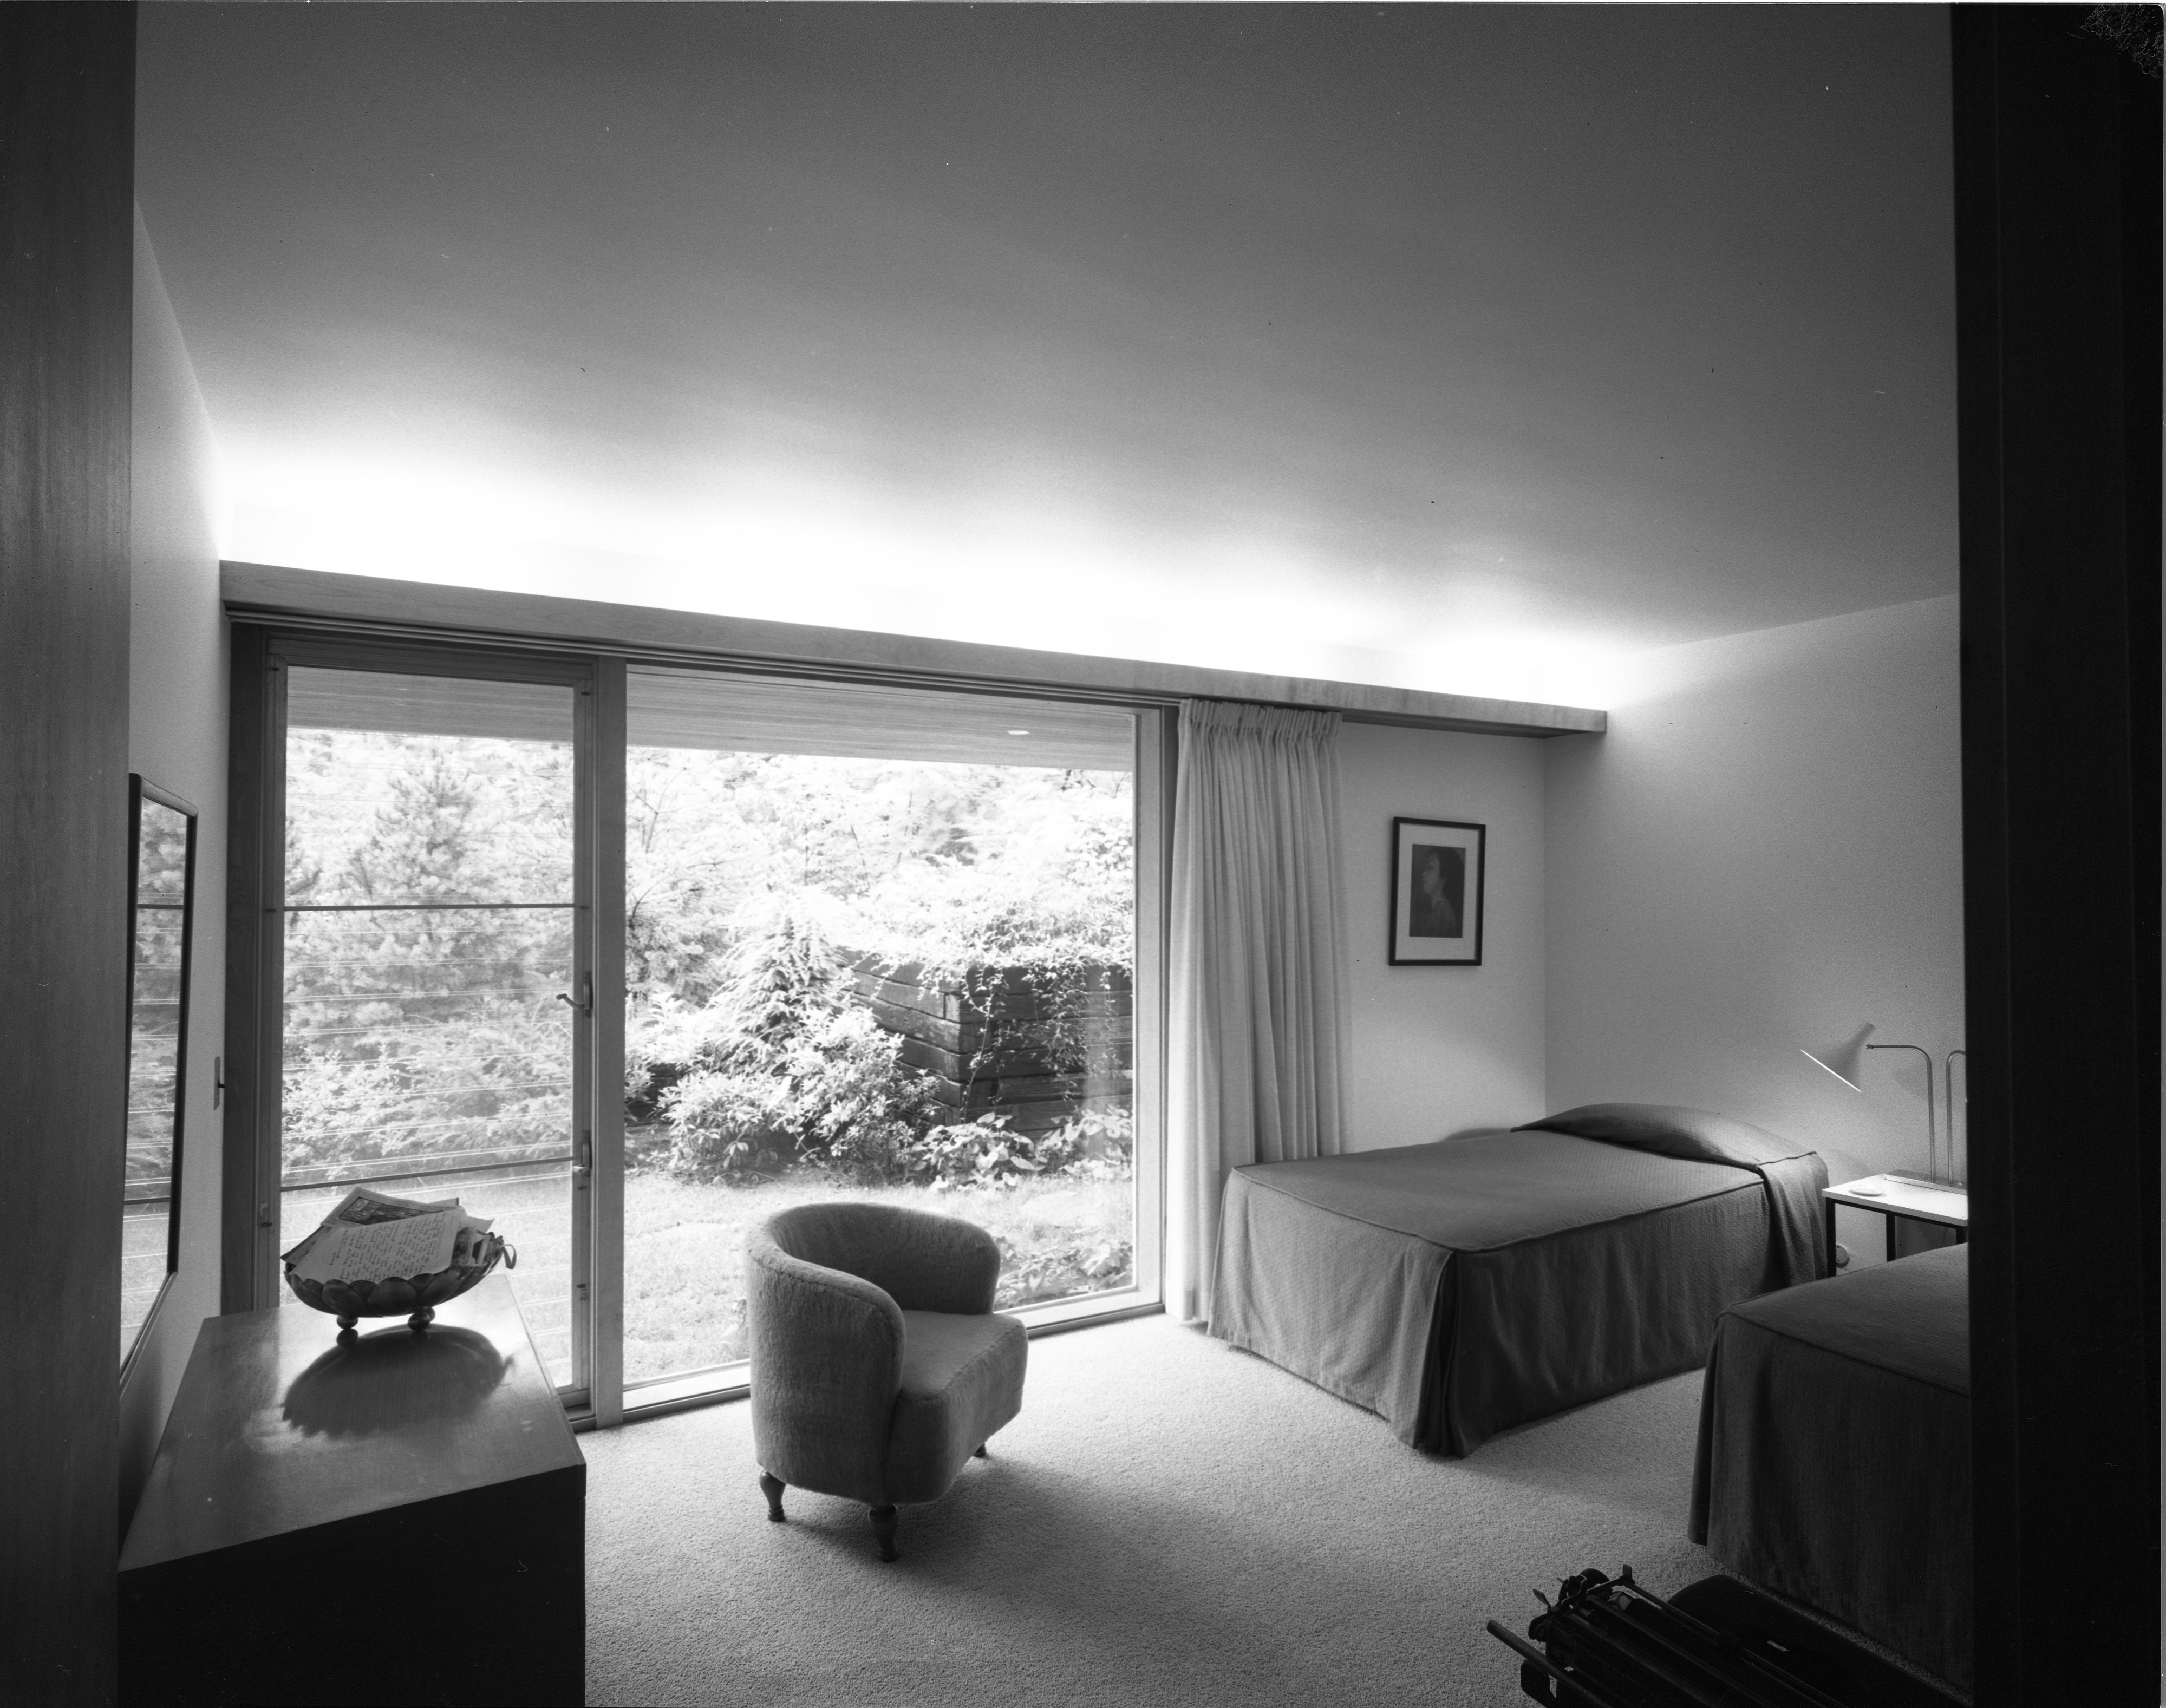 Guest Bedroom In the Pryor Mid-Century Modern Home In Barton Hills, July 1960 image